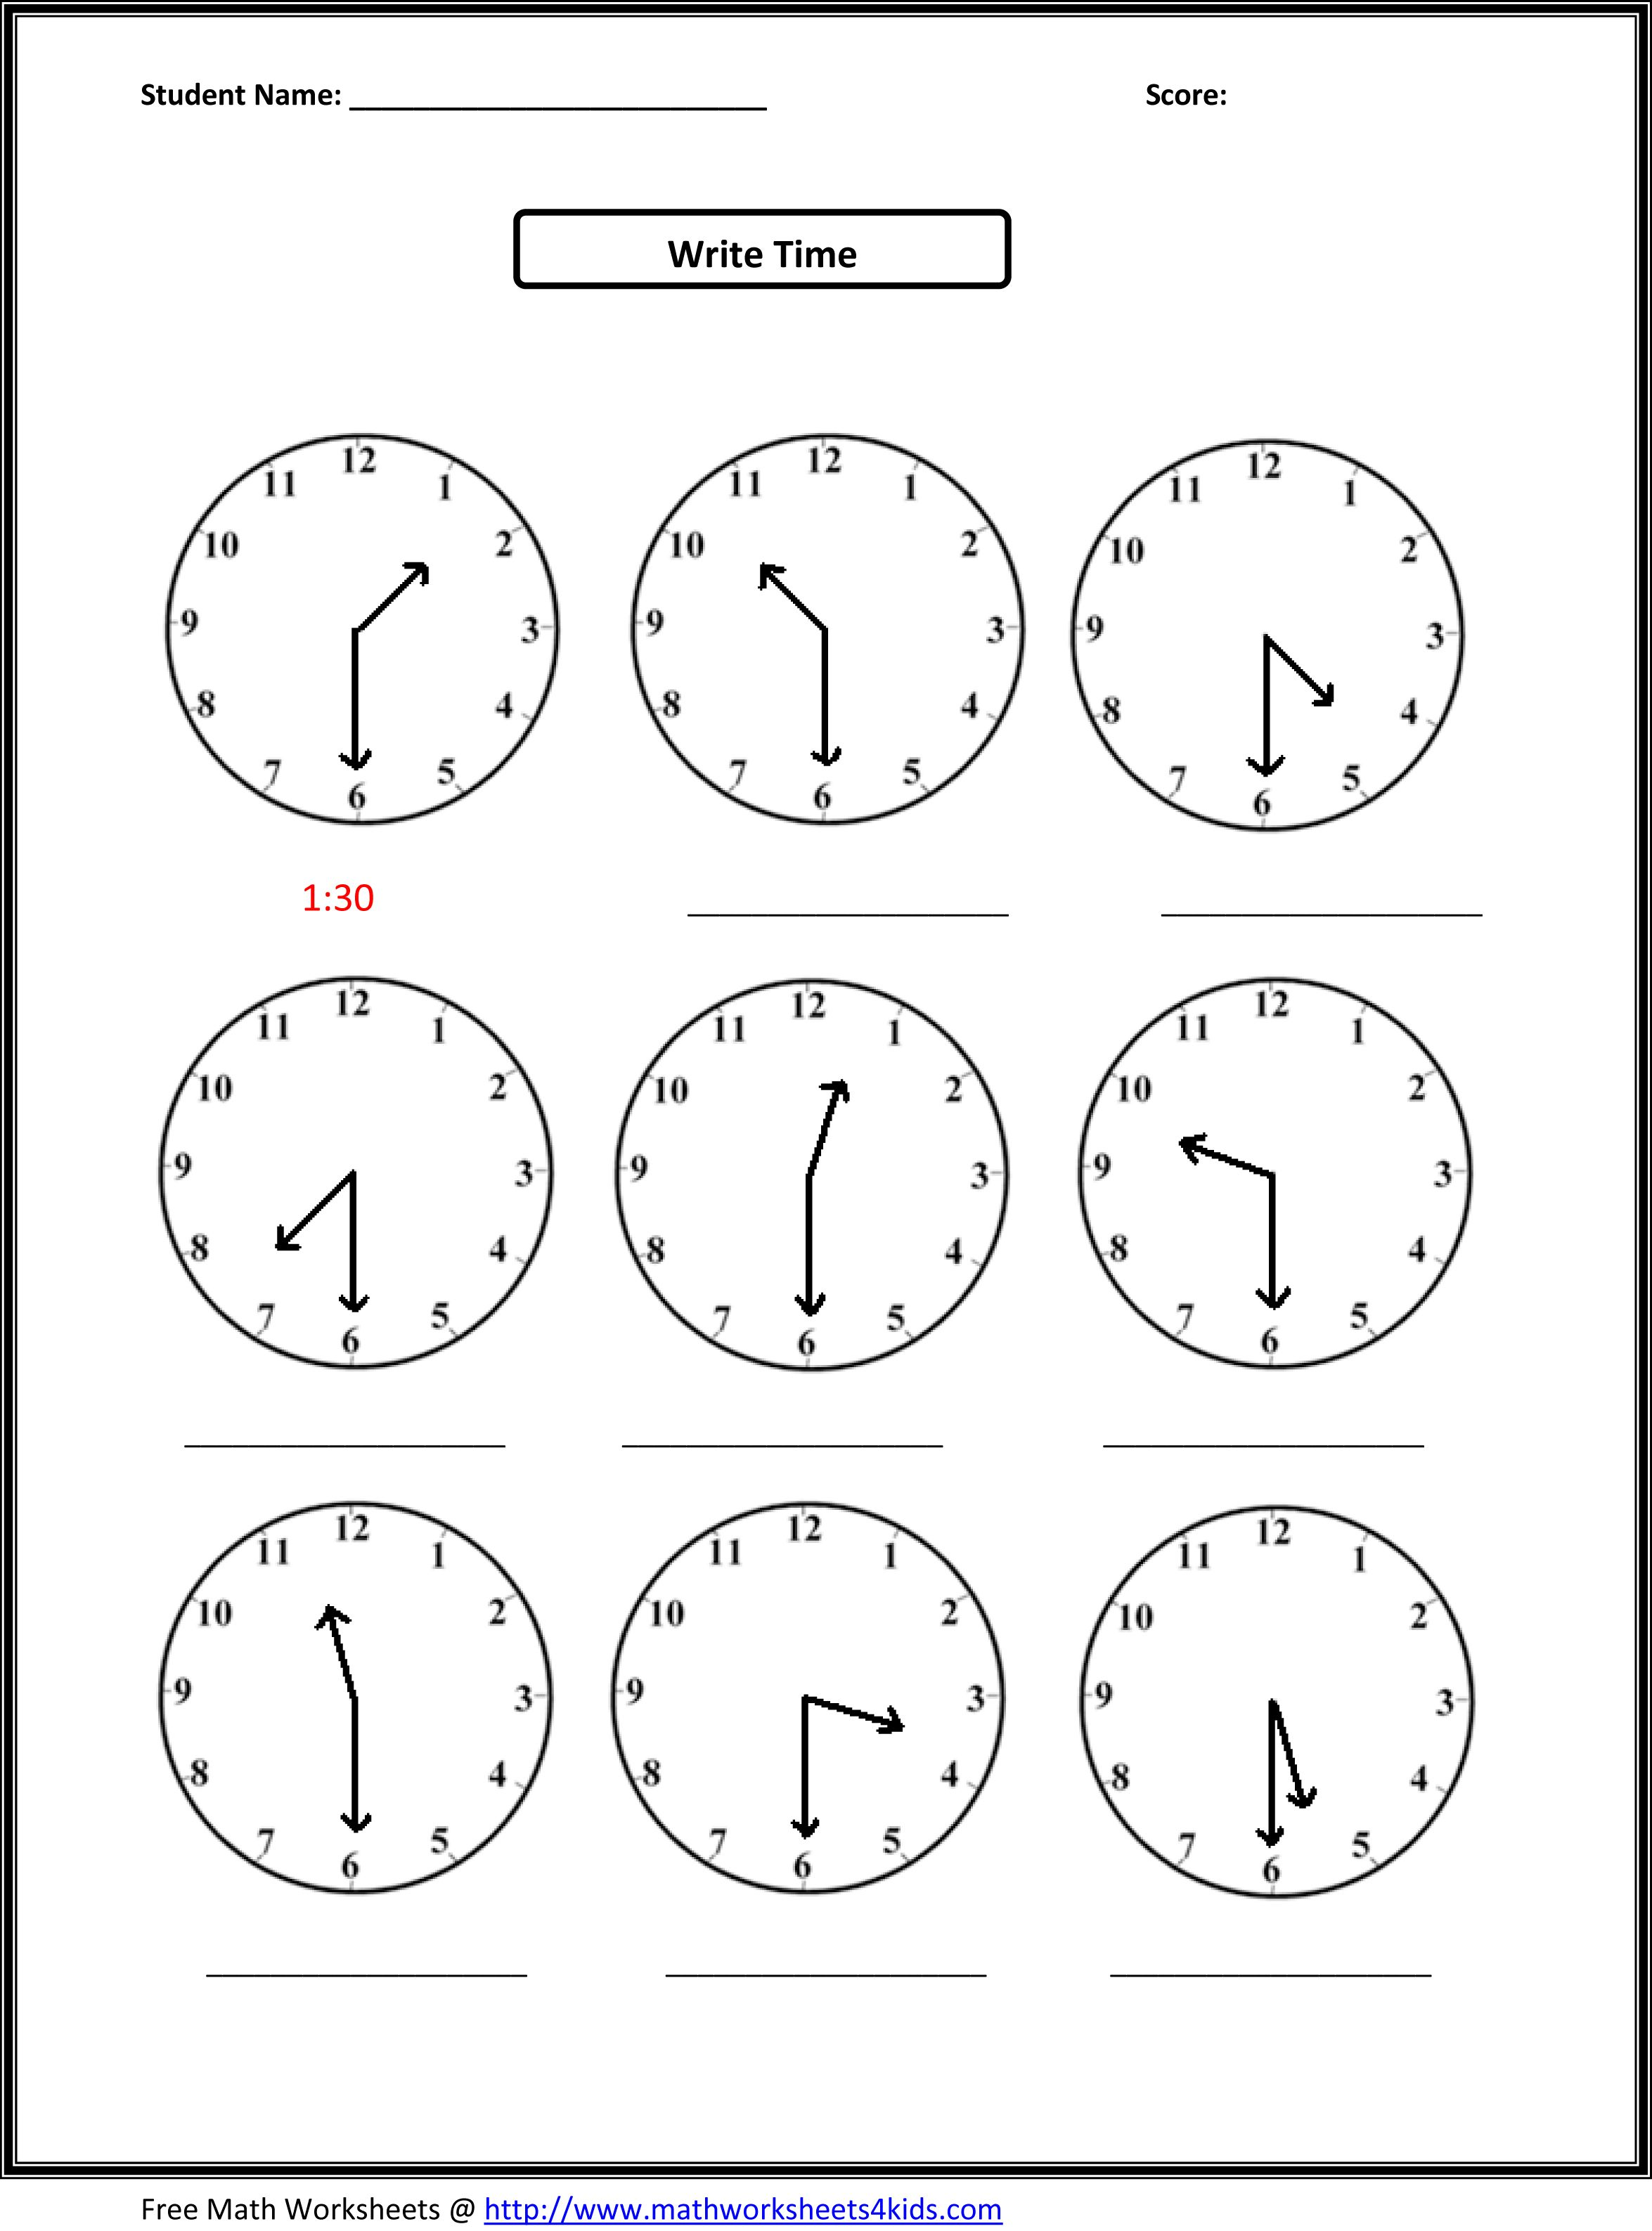 Weirdmailus  Unique Worksheet On Time For Grade   Reocurent With Engaging Free Printable Telling Time Worksheets Nd Grade  Reocurent With Amazing Free Printable Color By Number Worksheets Also Free Online Worksheets In Addition Spanish Interrogatives Worksheet And Multiplication And Division Facts Worksheet As Well As Solving Systems Of Equations Using Elimination Worksheet Additionally Avoiding Plagiarism Worksheet From Reocurentcom With Weirdmailus  Engaging Worksheet On Time For Grade   Reocurent With Amazing Free Printable Telling Time Worksheets Nd Grade  Reocurent And Unique Free Printable Color By Number Worksheets Also Free Online Worksheets In Addition Spanish Interrogatives Worksheet From Reocurentcom